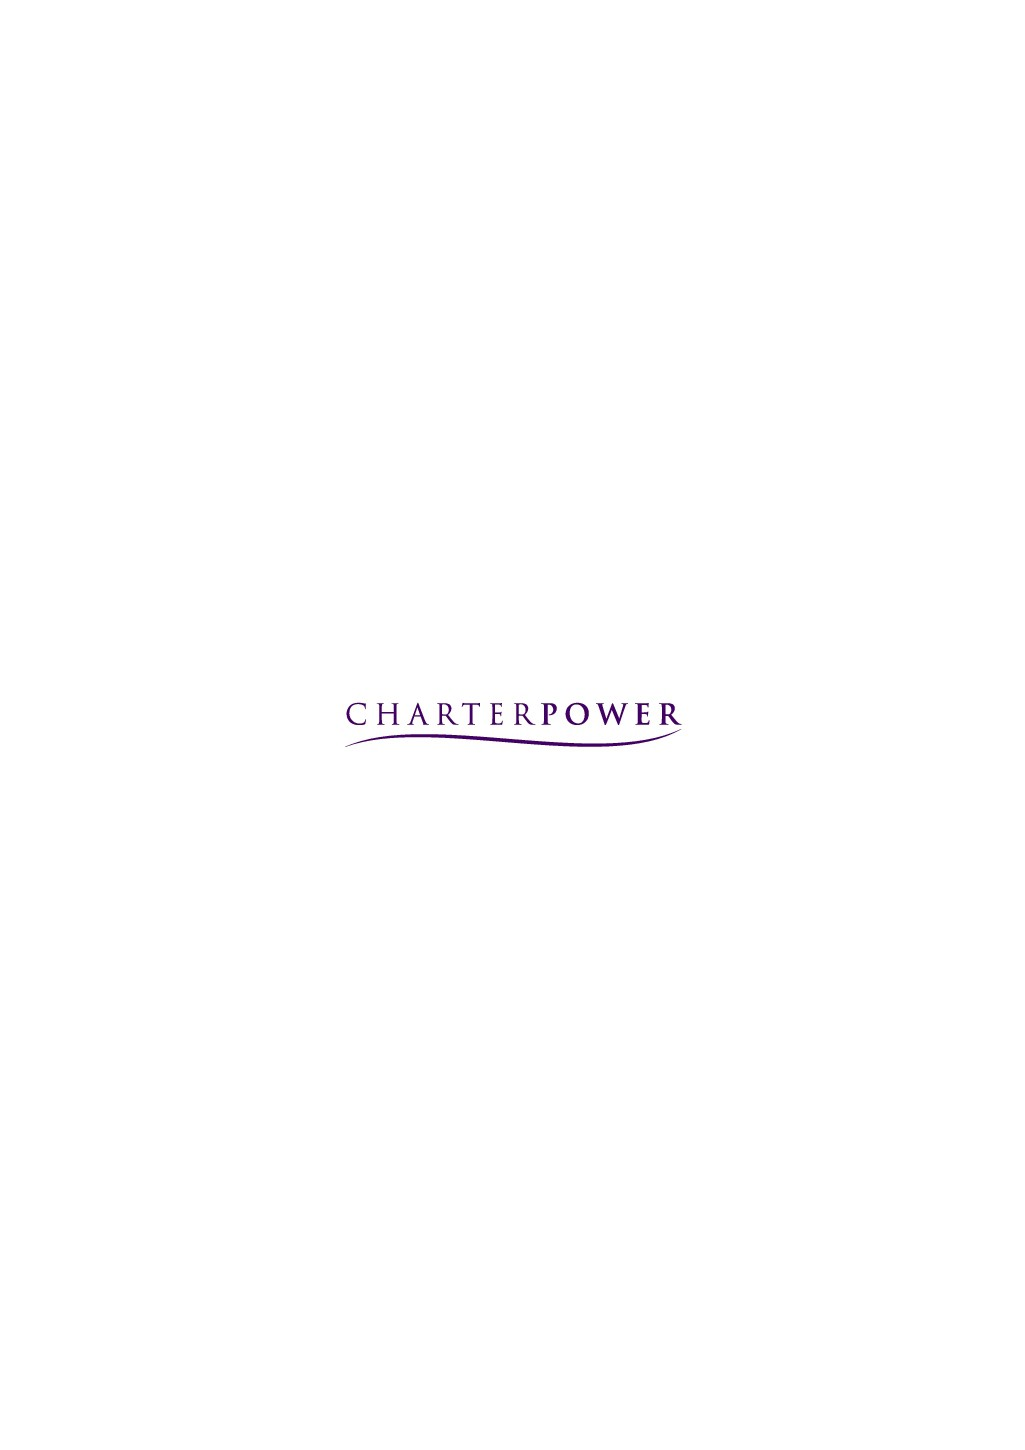 CHARTER POWER - disruptive approach to traditional industries